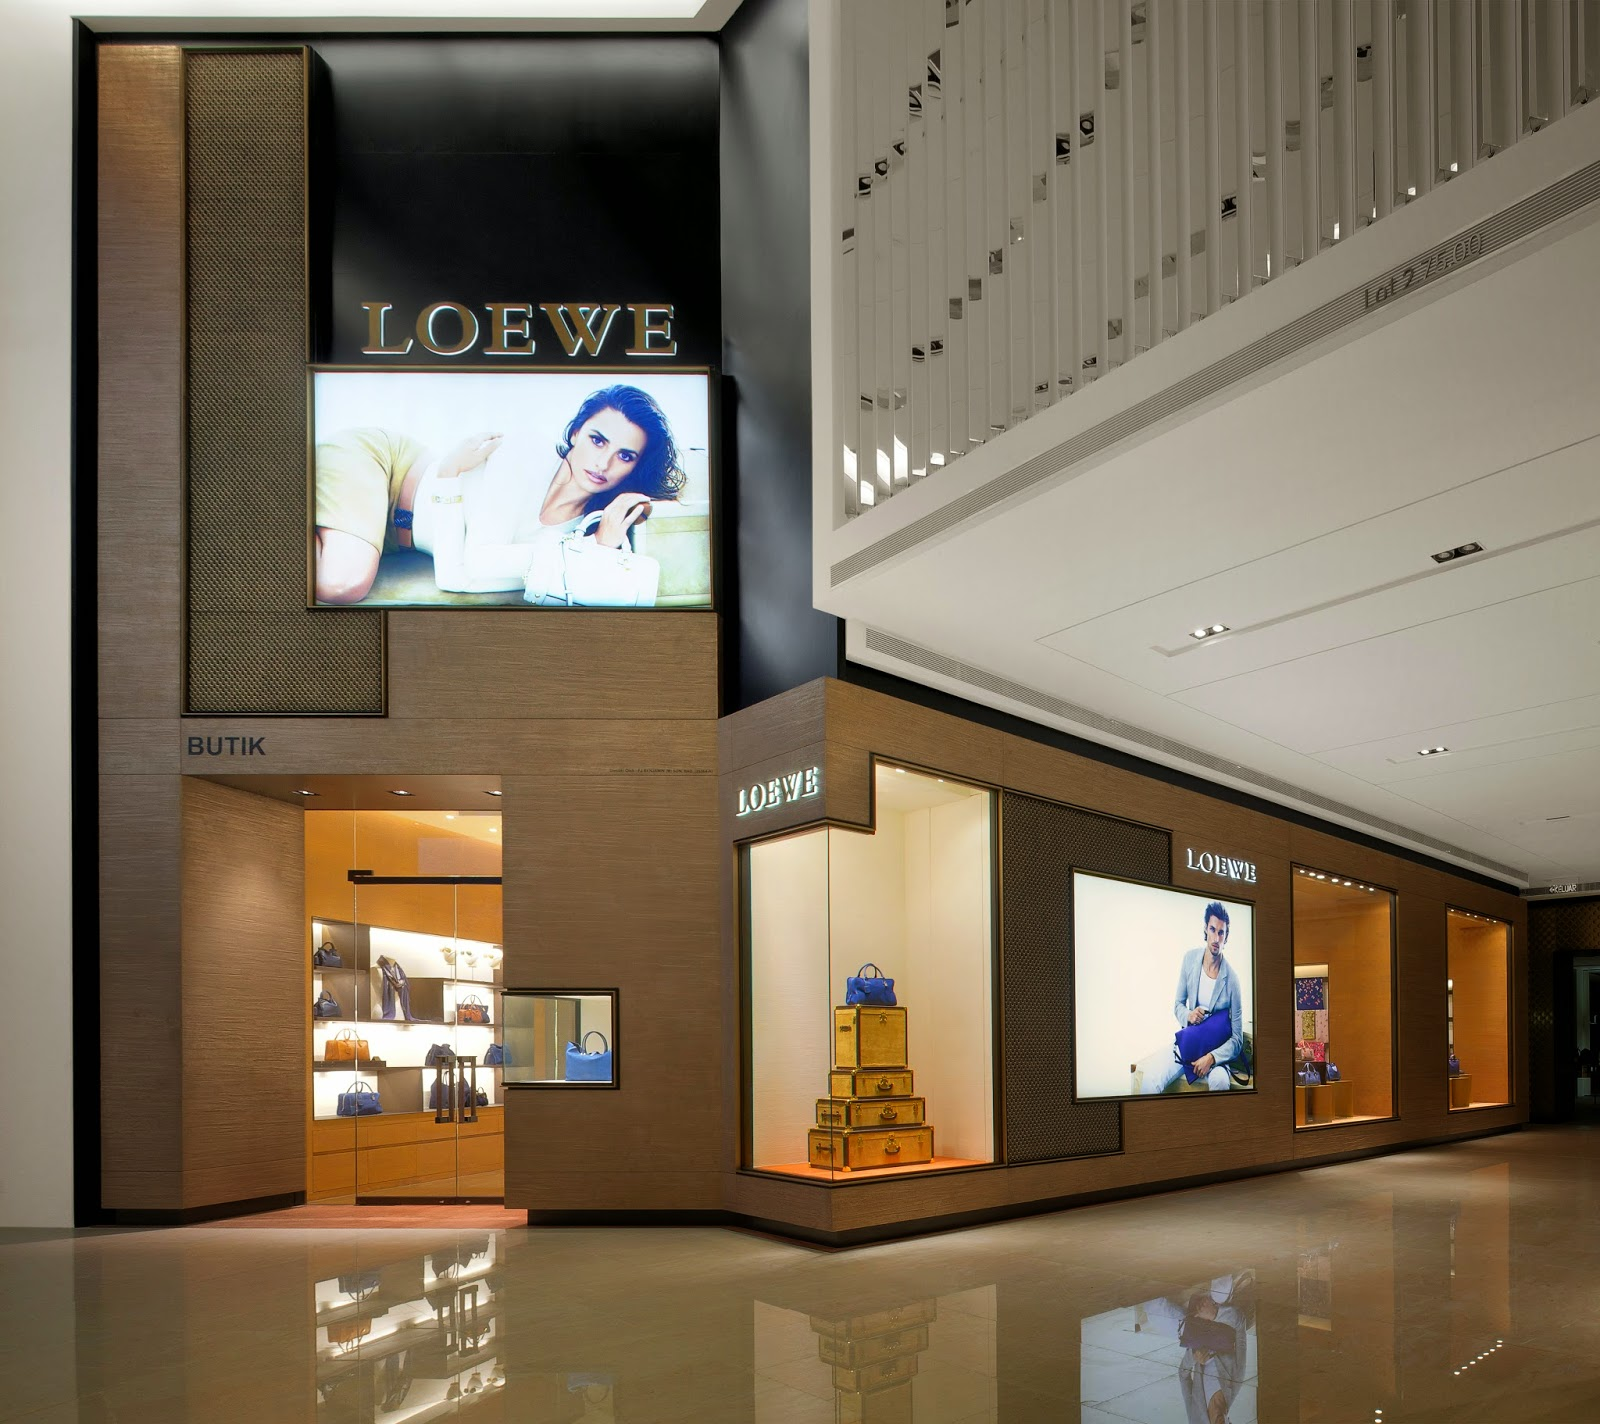 Loewe's New Store at Pavilion KL